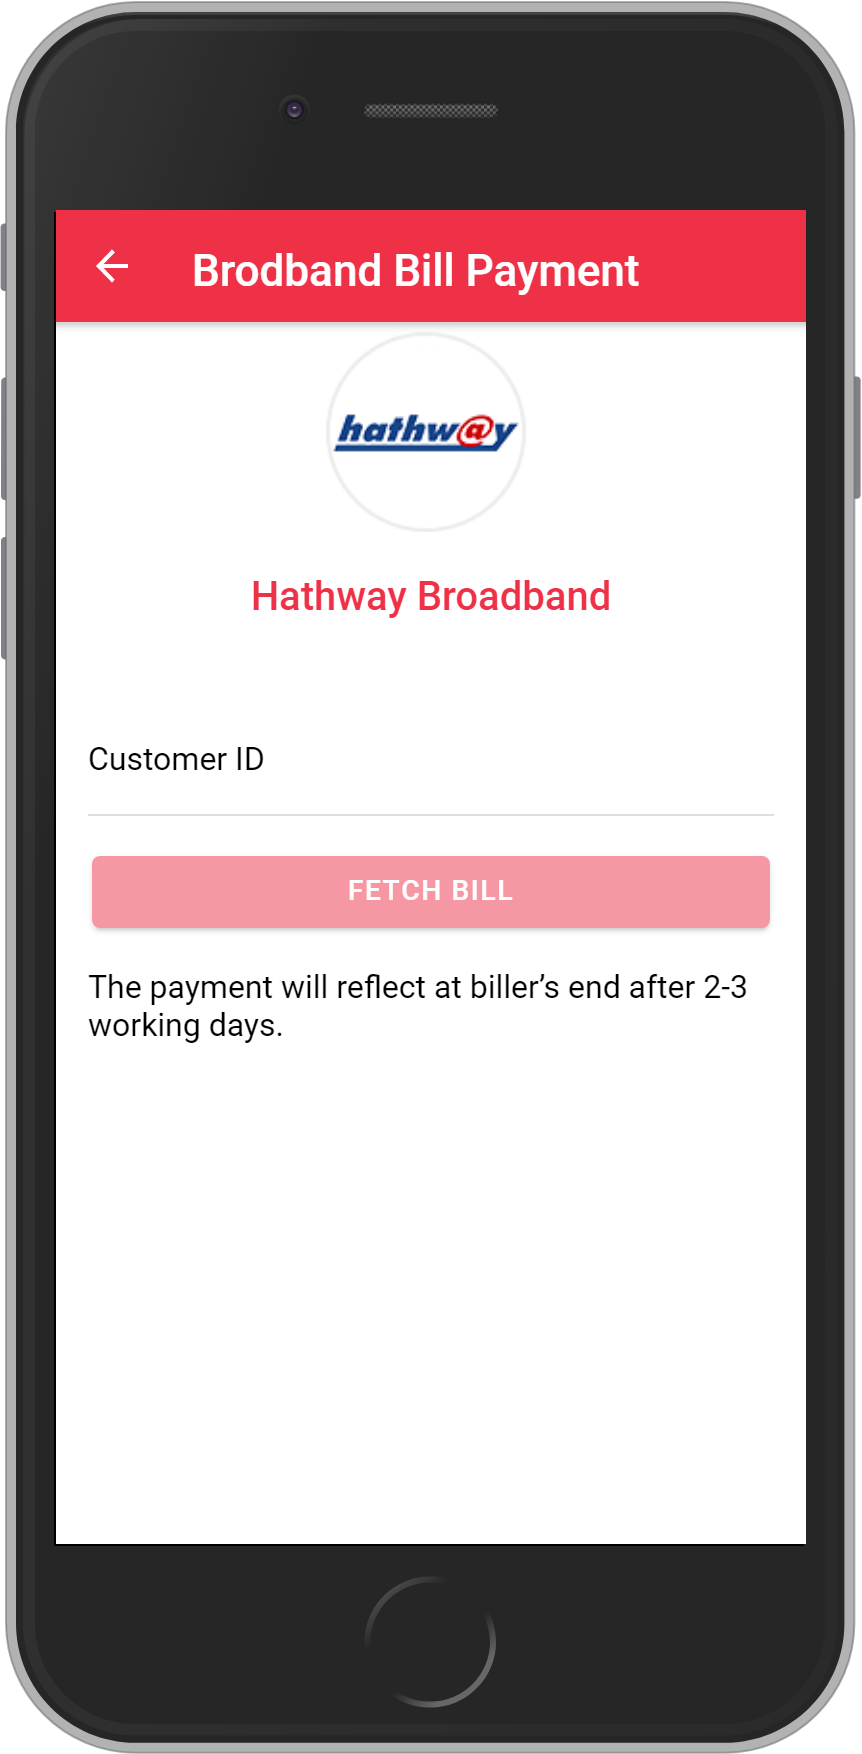 Get UNLIMITED <b>0.1%</b> CASHBACK on Hathway Broadband Bill Payment.